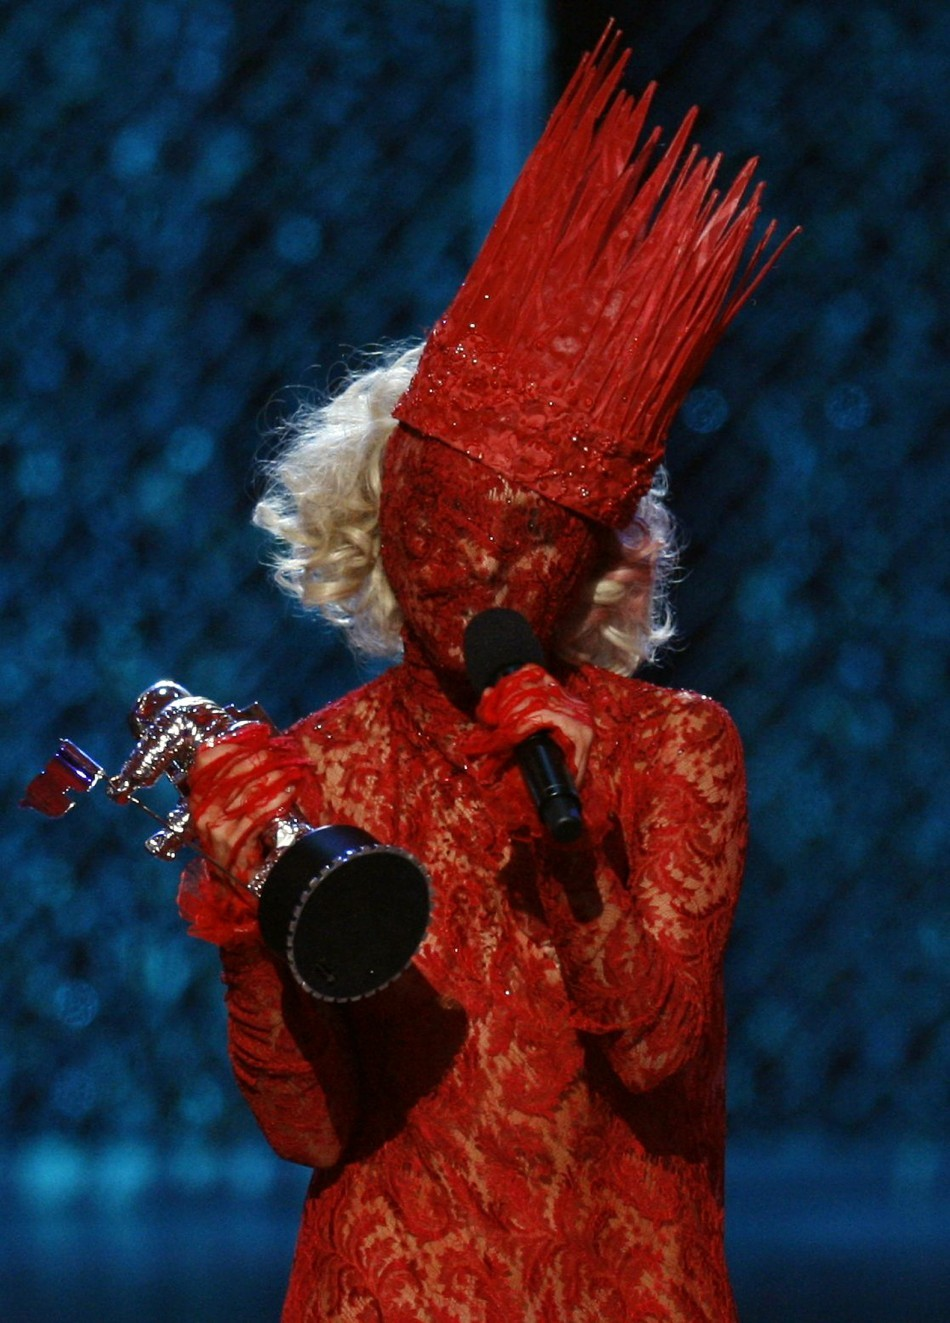 Lady Gaga accepts the award for best new artist at the 2009 MTV Video Music Awards in New York